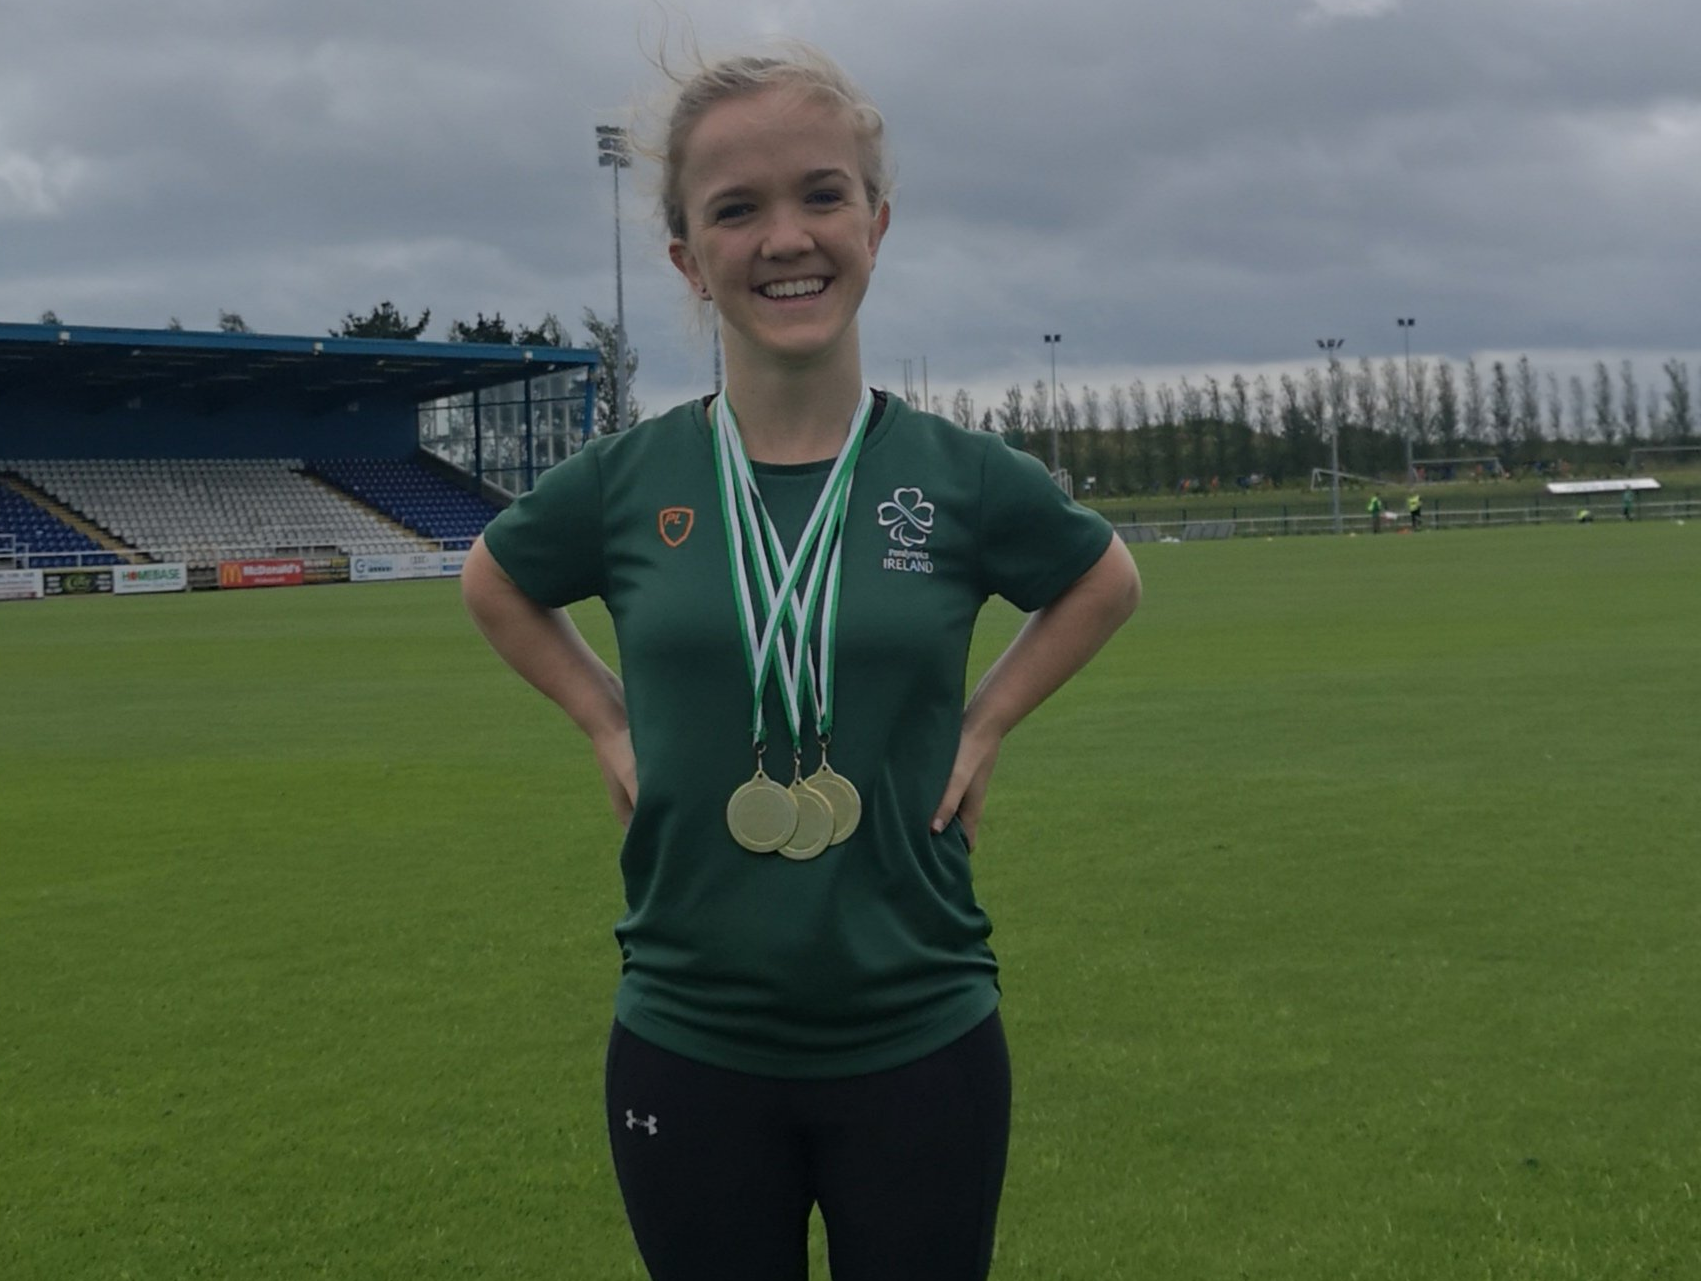 Mary Fitzgerald wins gold and breaks records